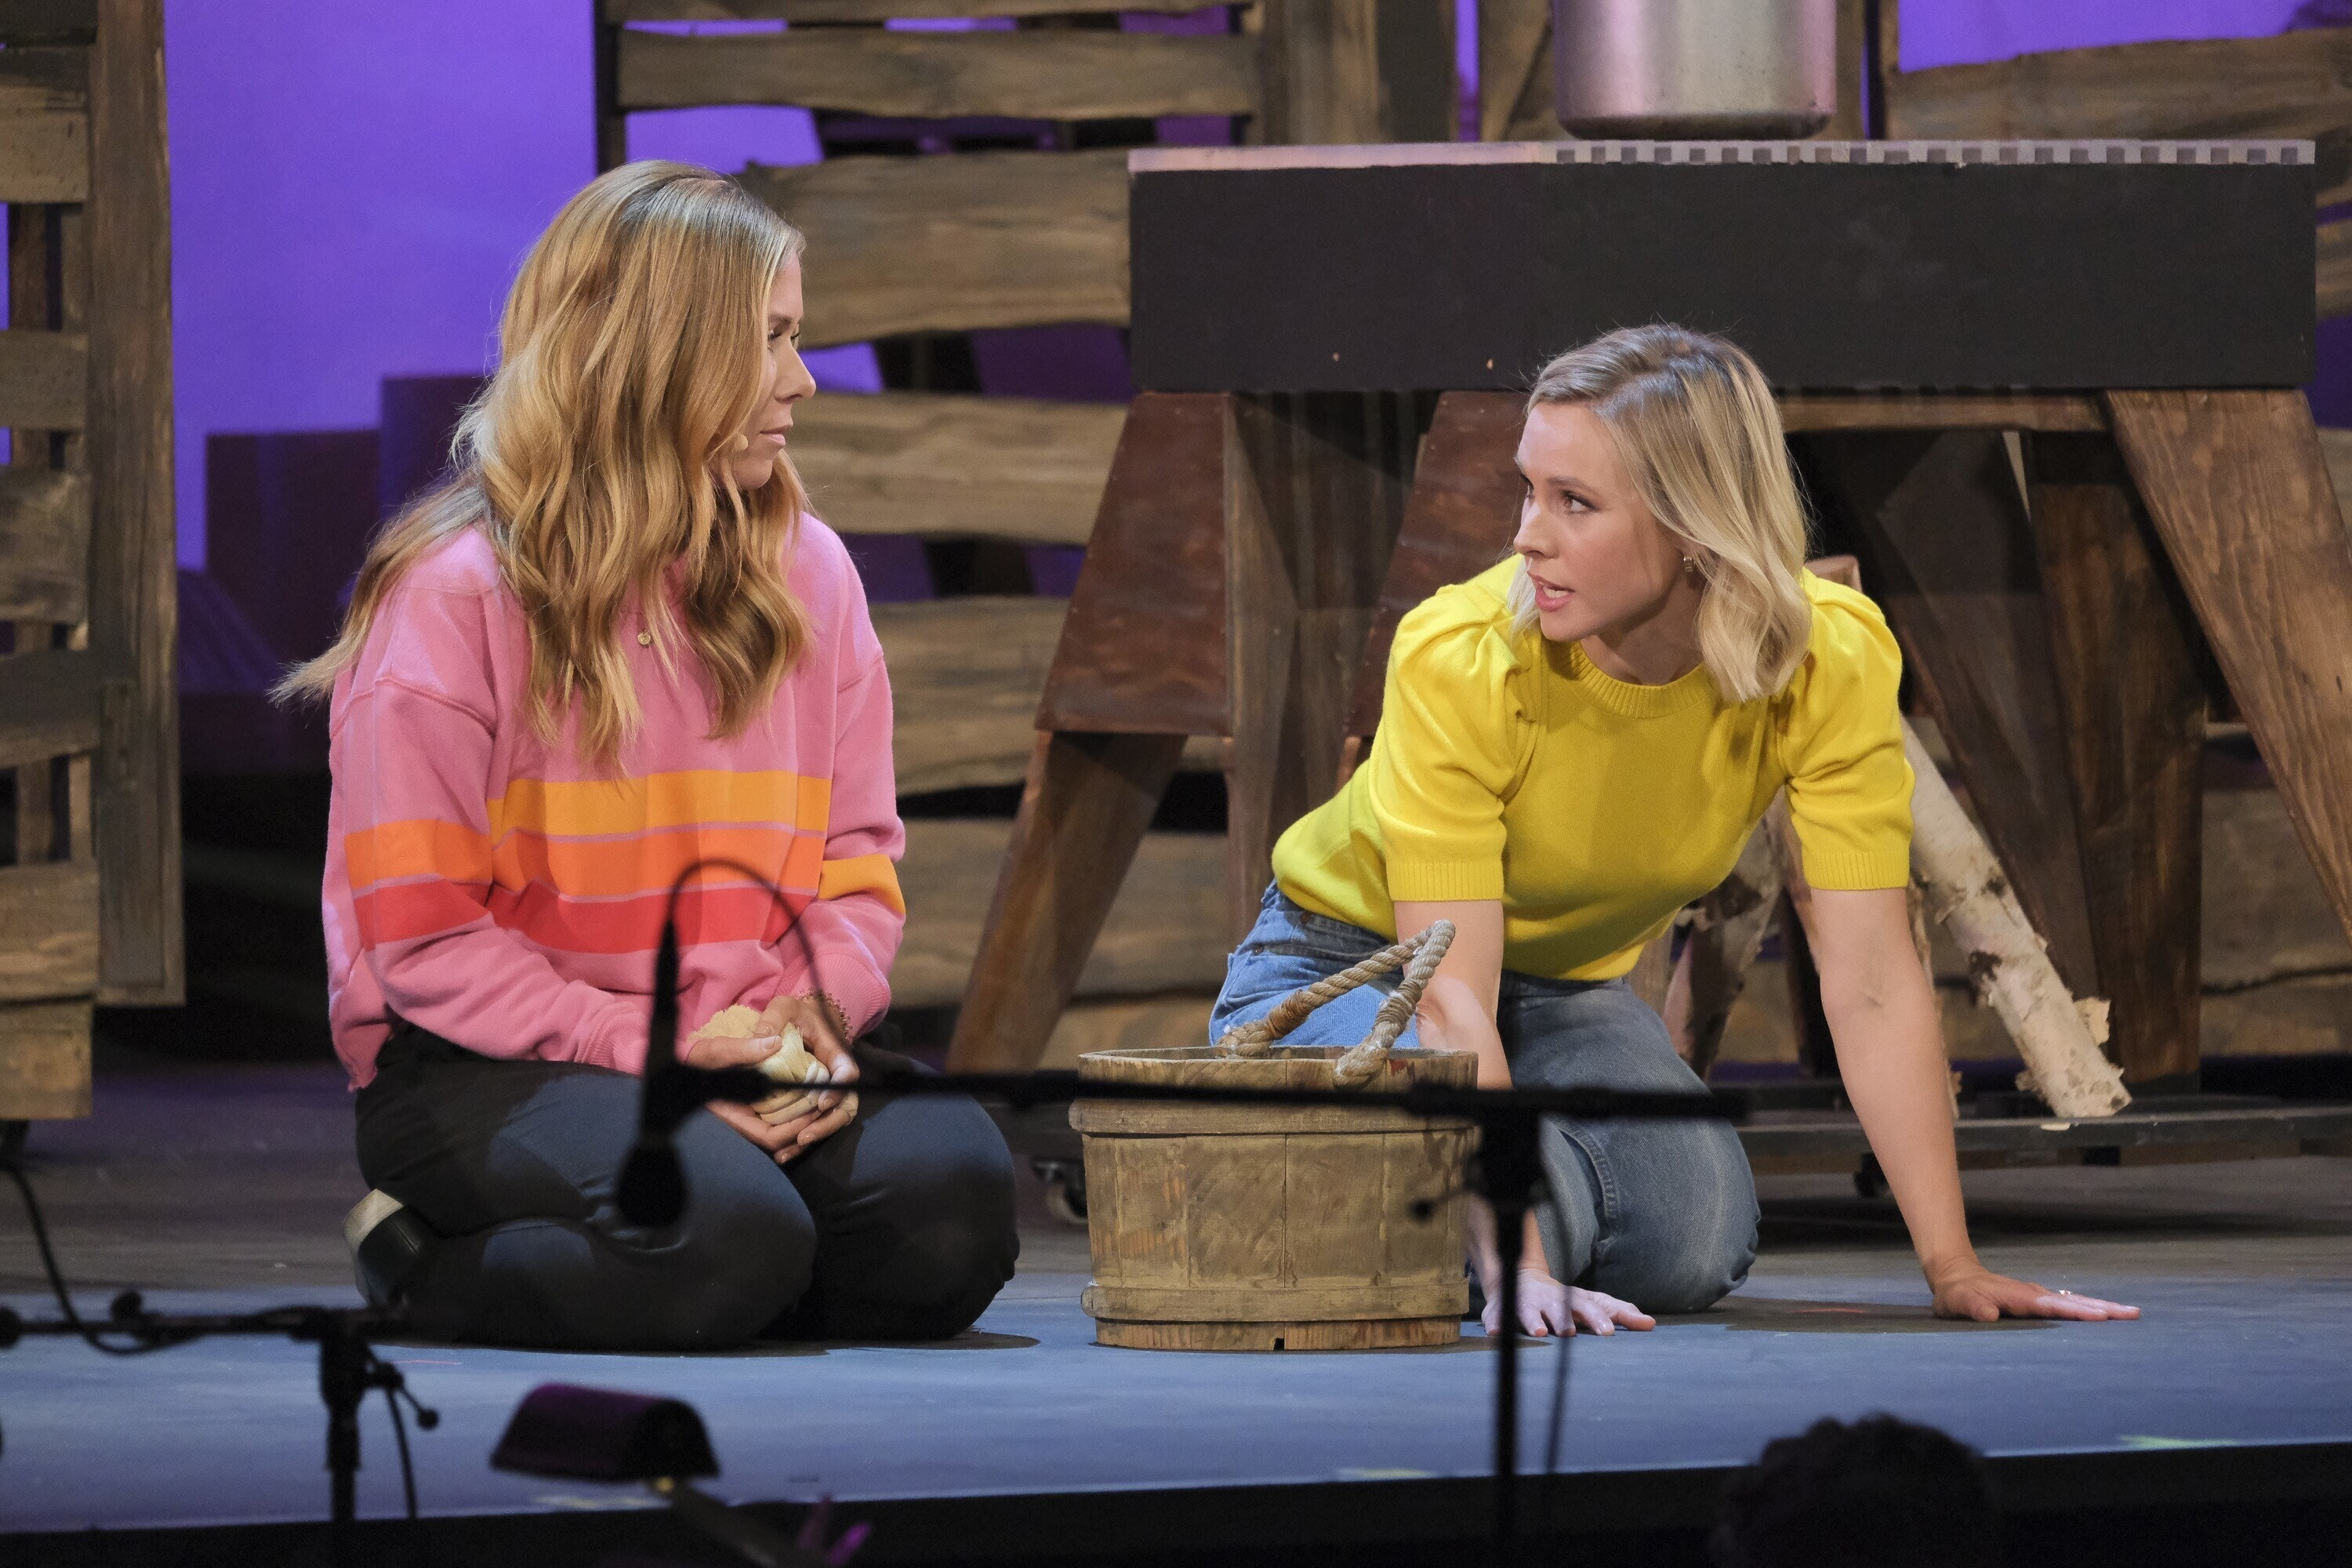 Kristen Bell onstage on her knees with another performer